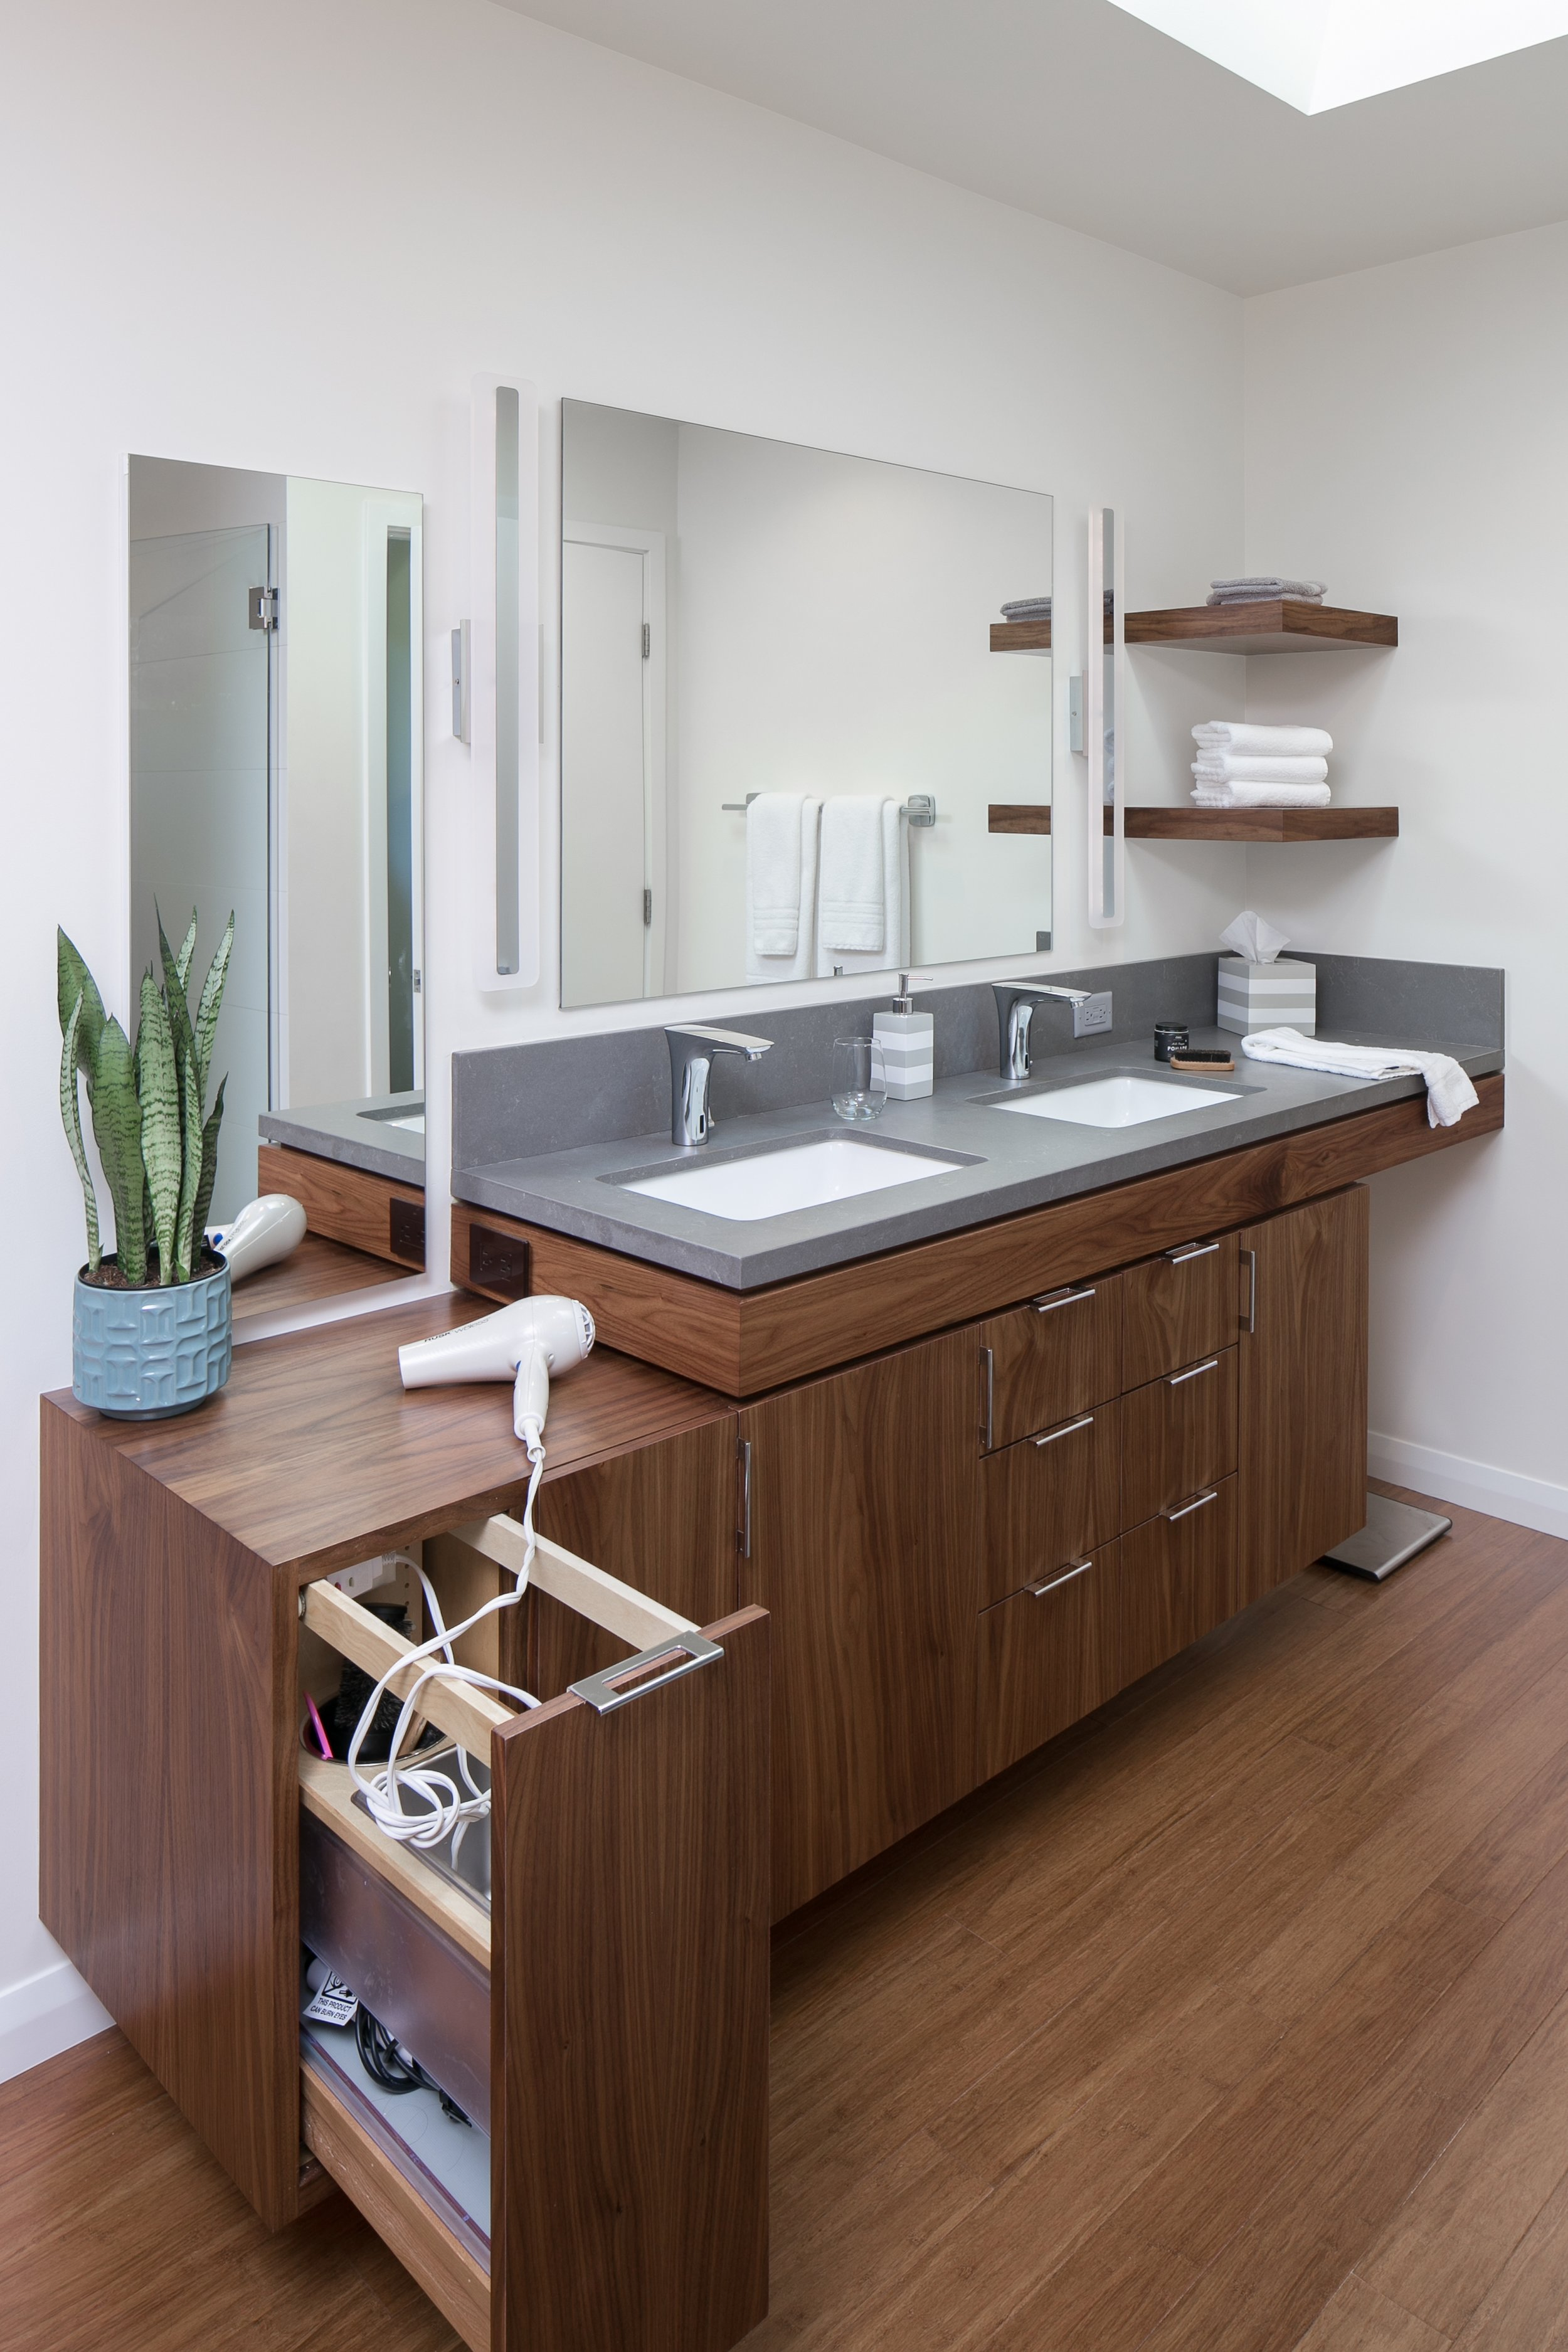 Double vanity with functional storage